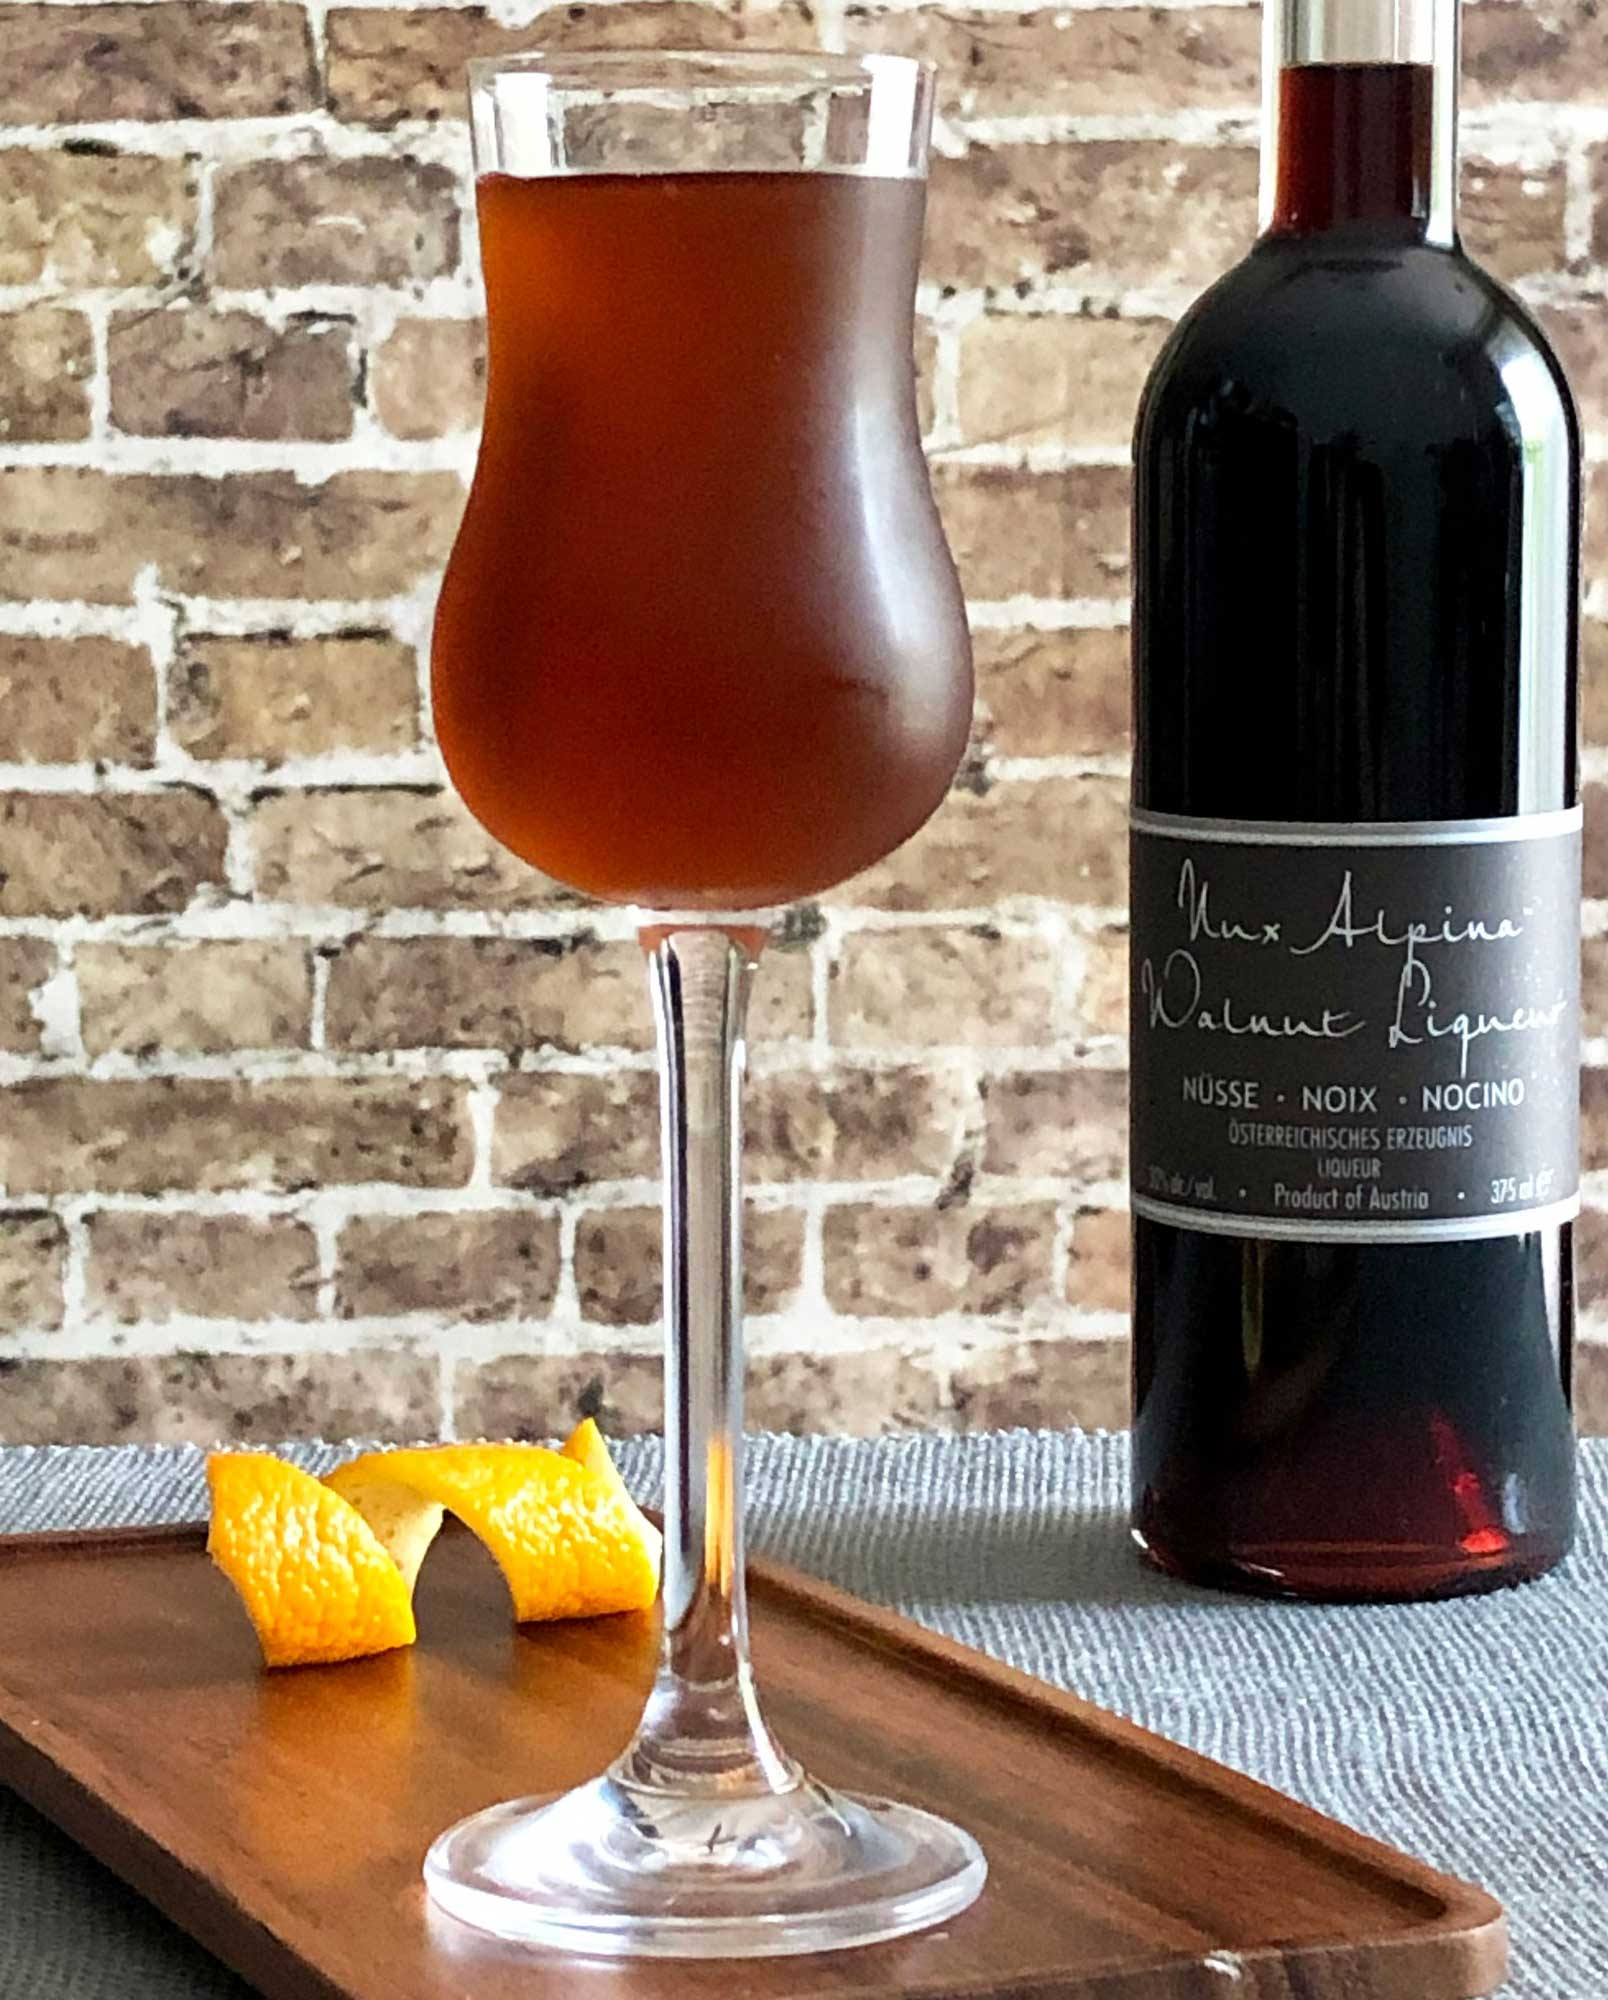 An example of the Mississauga Cocktail, the mixed drink (cocktail) featuring rye whiskey, Nux Alpina Walnut Liqueur, simple syrup, Angostura bitters, and orange bitters; photo by Lee Edwards